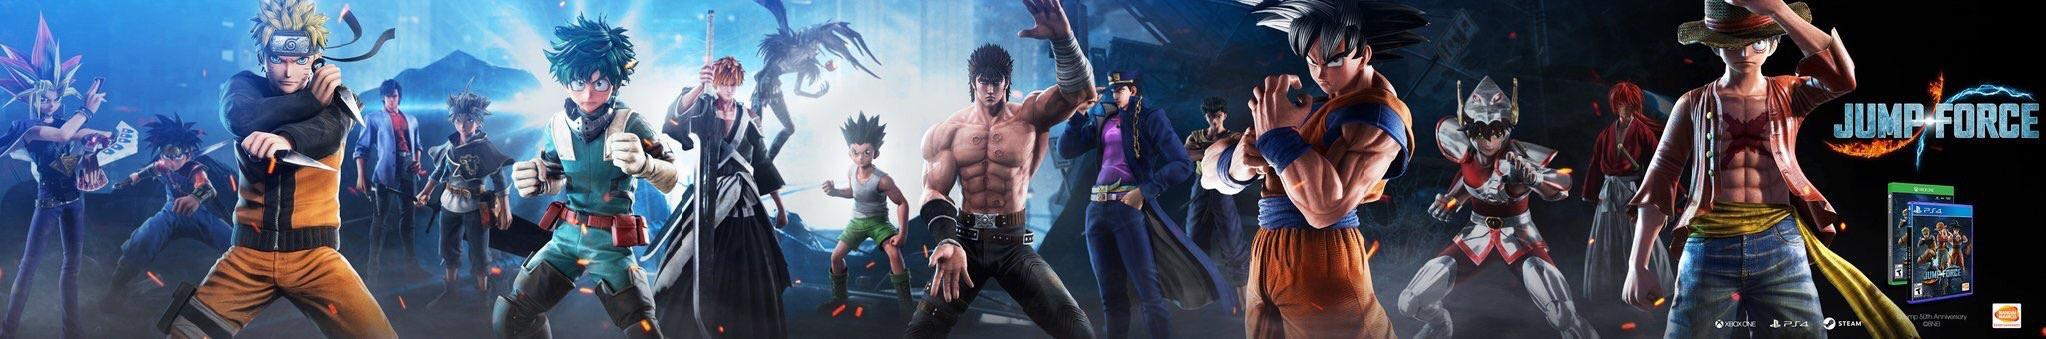 Jump Force, PlayStation 4, Xbox One, release date, gameplay, price, features, US, North America, Europe, update, news, new characters, advertisement leak,JoJo's Bizarre Adventure, Dragon Quest,Jotaro Kujo, Dai